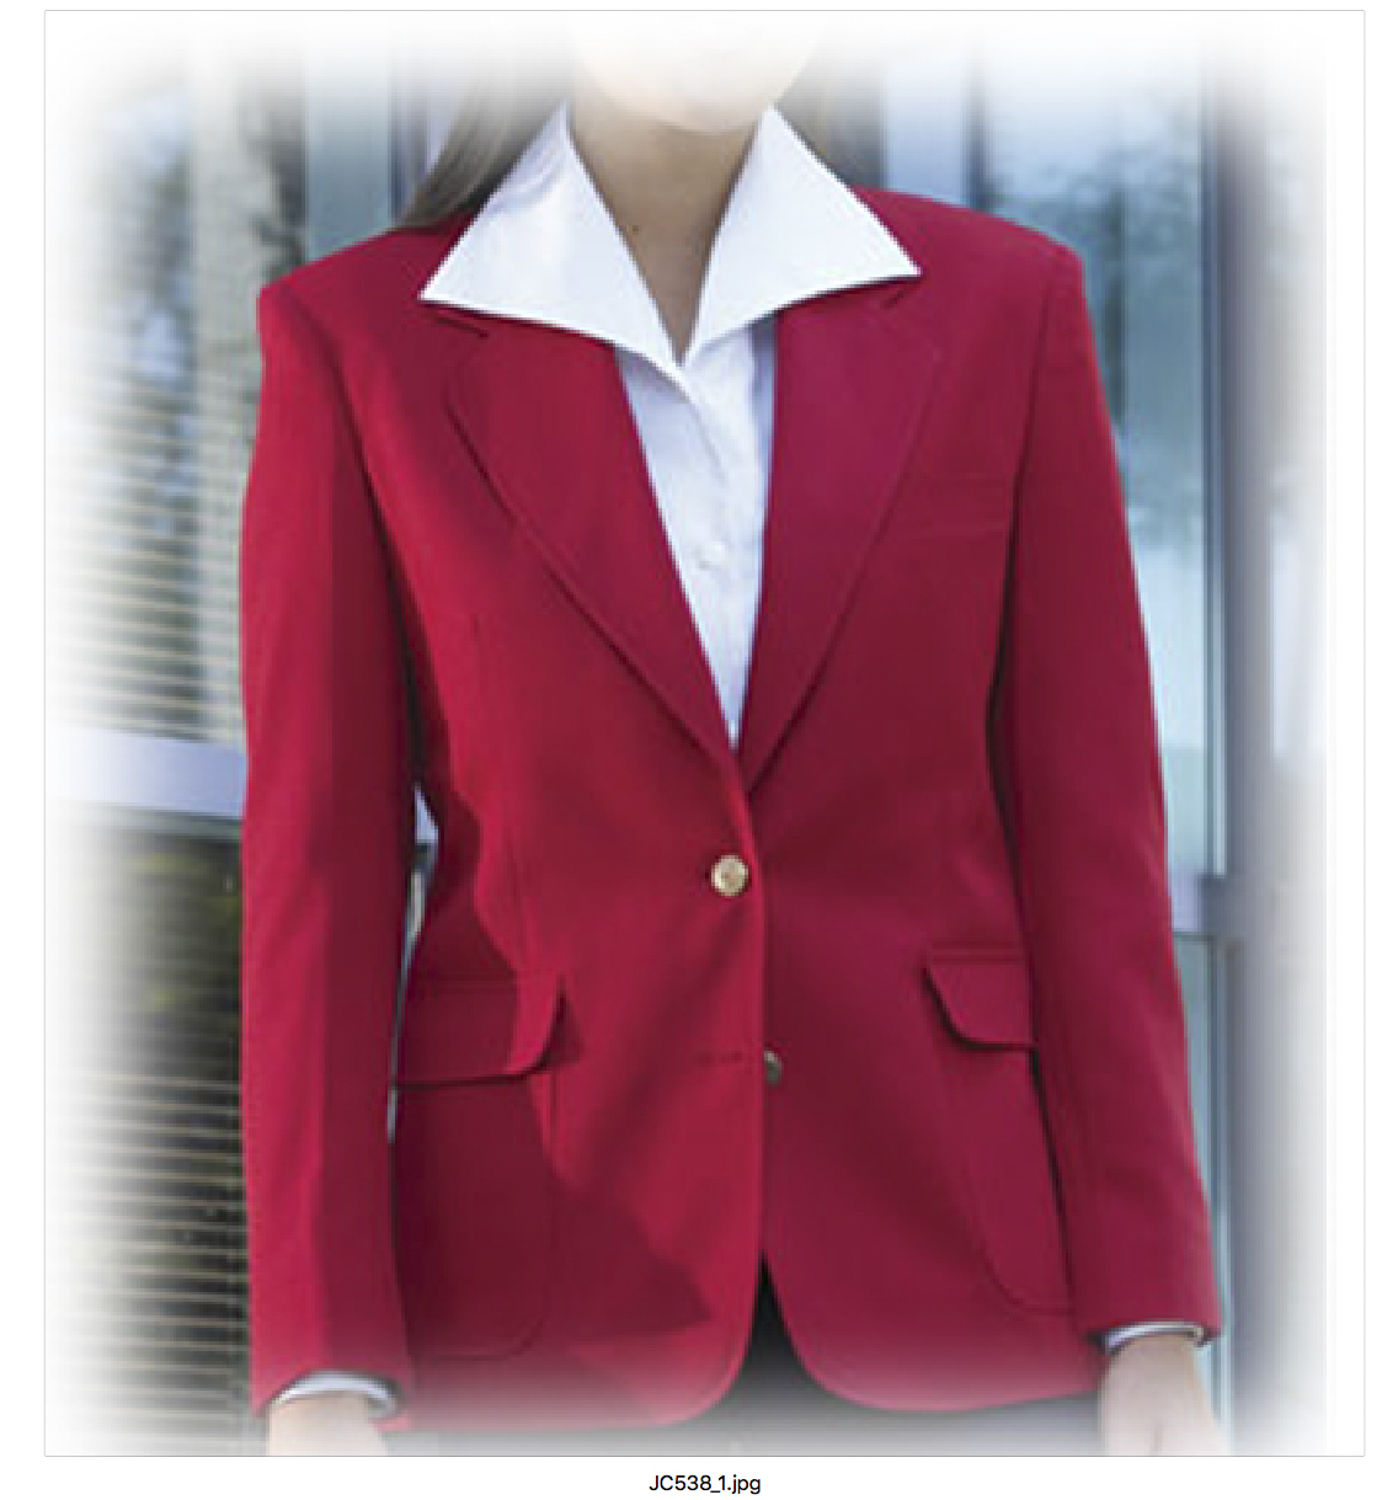 Fabian Couture Quartermaster Women's 100% Polyester 2 Button